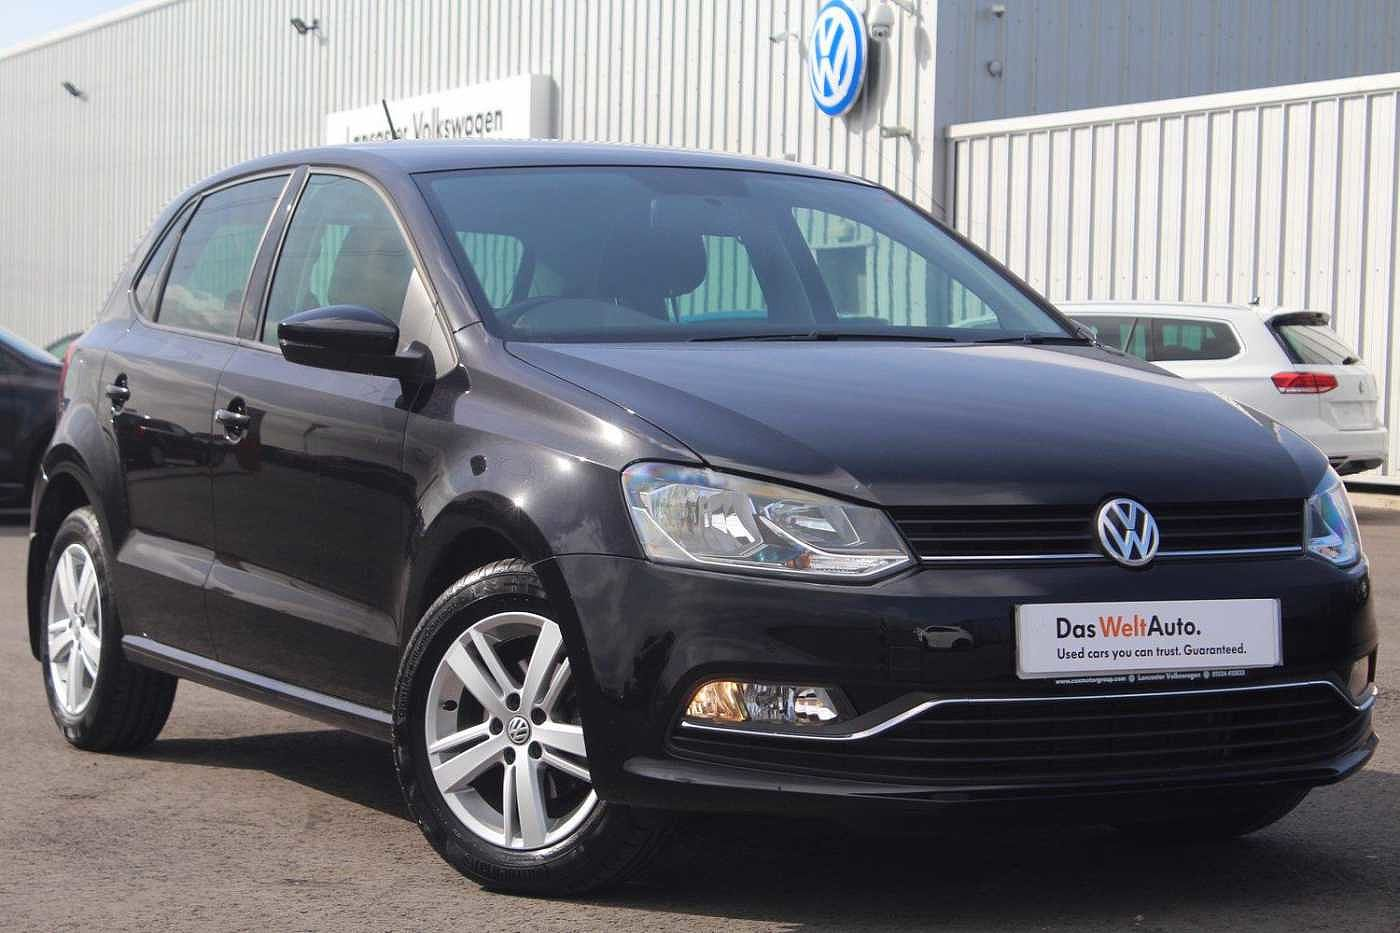 Volkswagen Polo 1.0 (60 PS) New Match BMT 5dr Hatchback